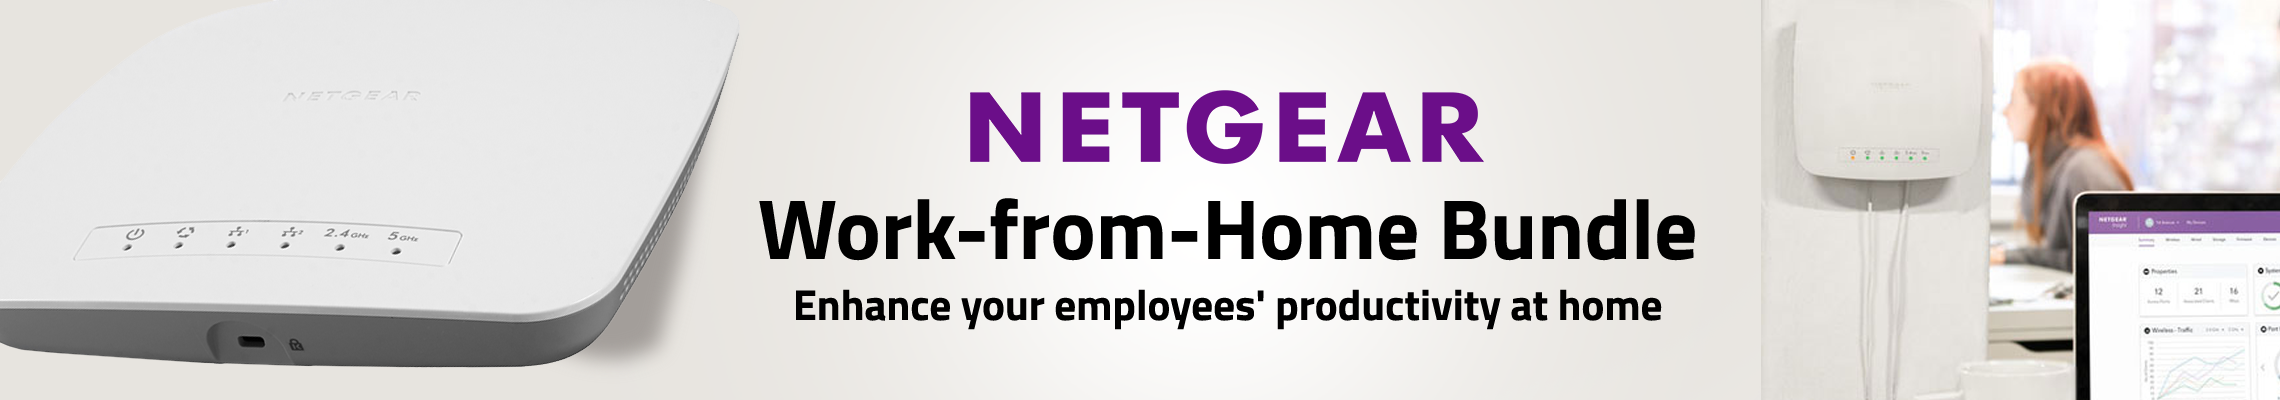 NETGEAR Work-from-Home Bundle enhances your emplyees' productivity at home